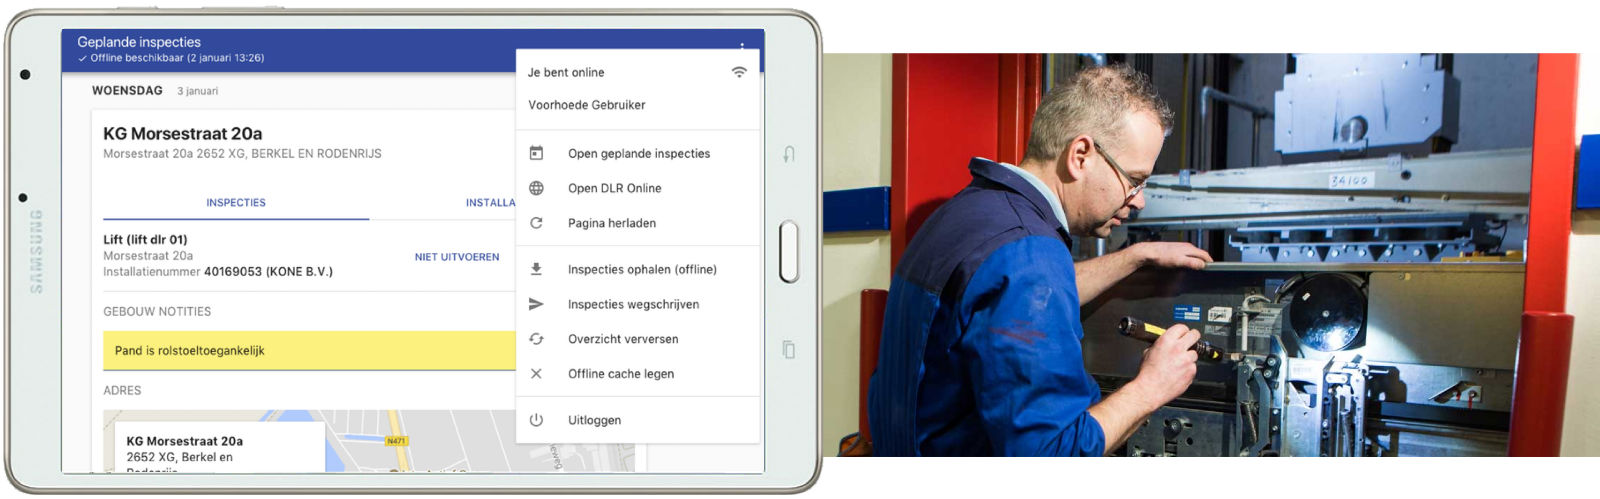 Inspection app for elevator inspectors.